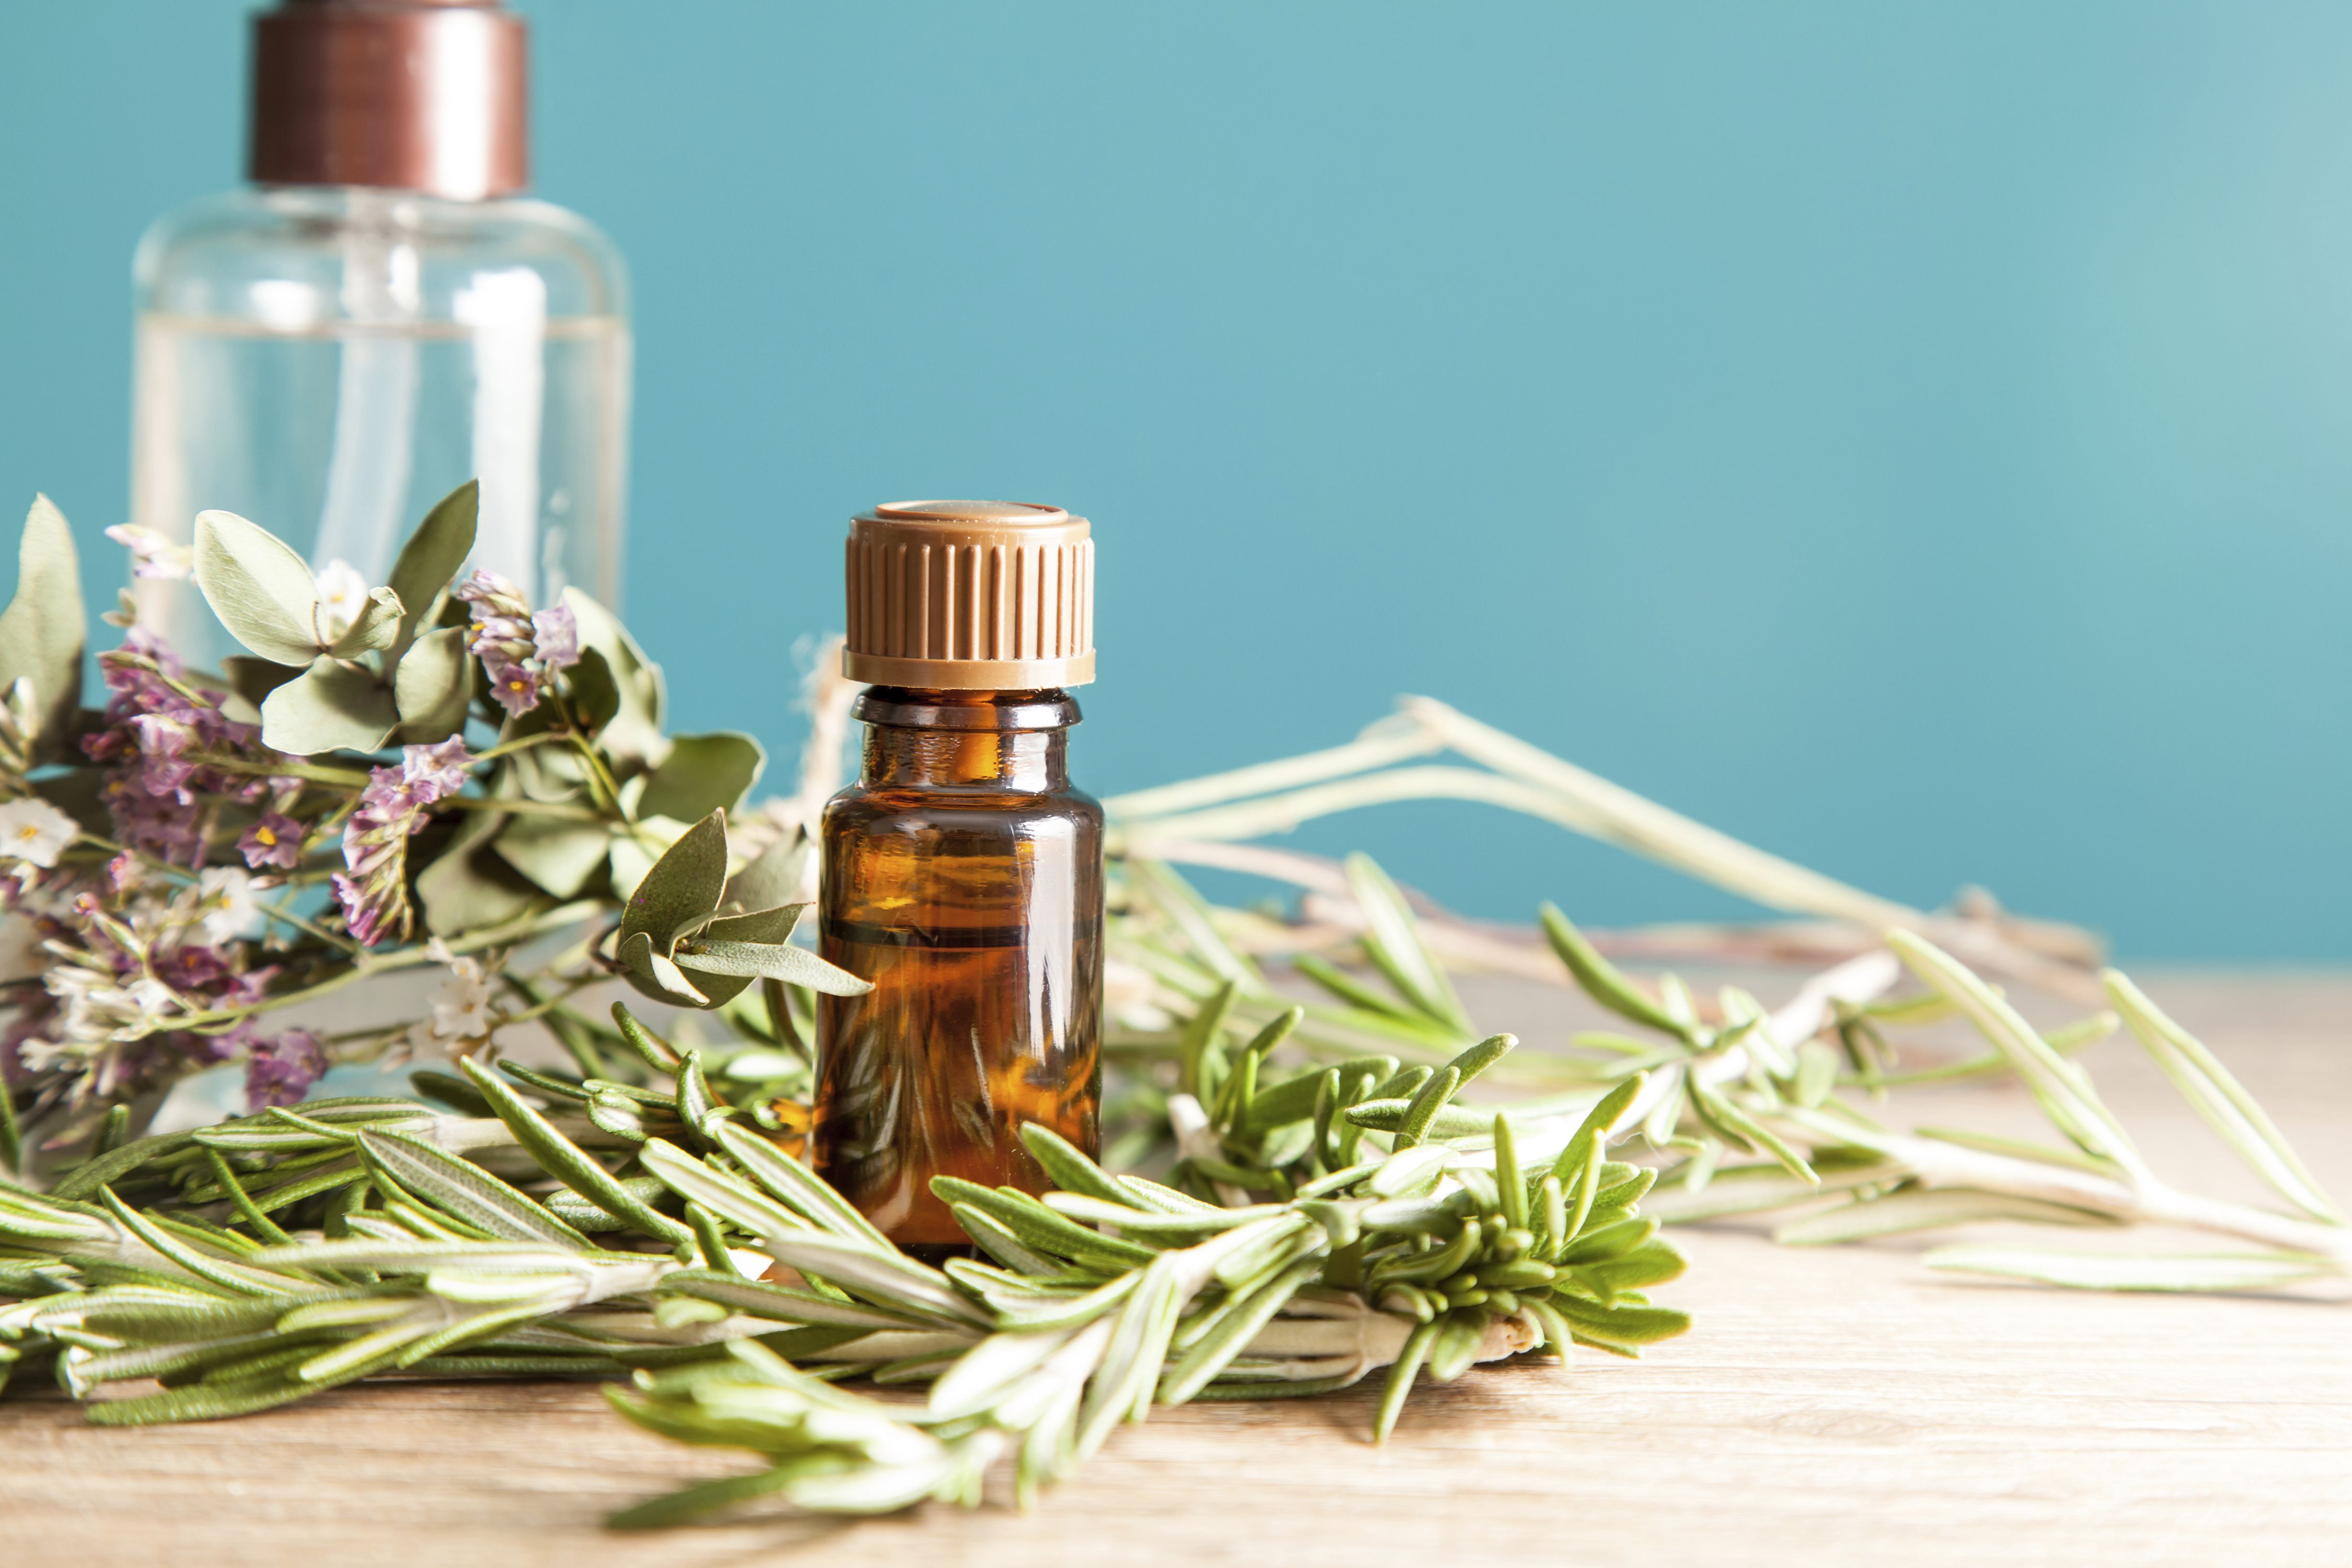 How to make natural rosemary heavy duty sink scrub at home #cleaning